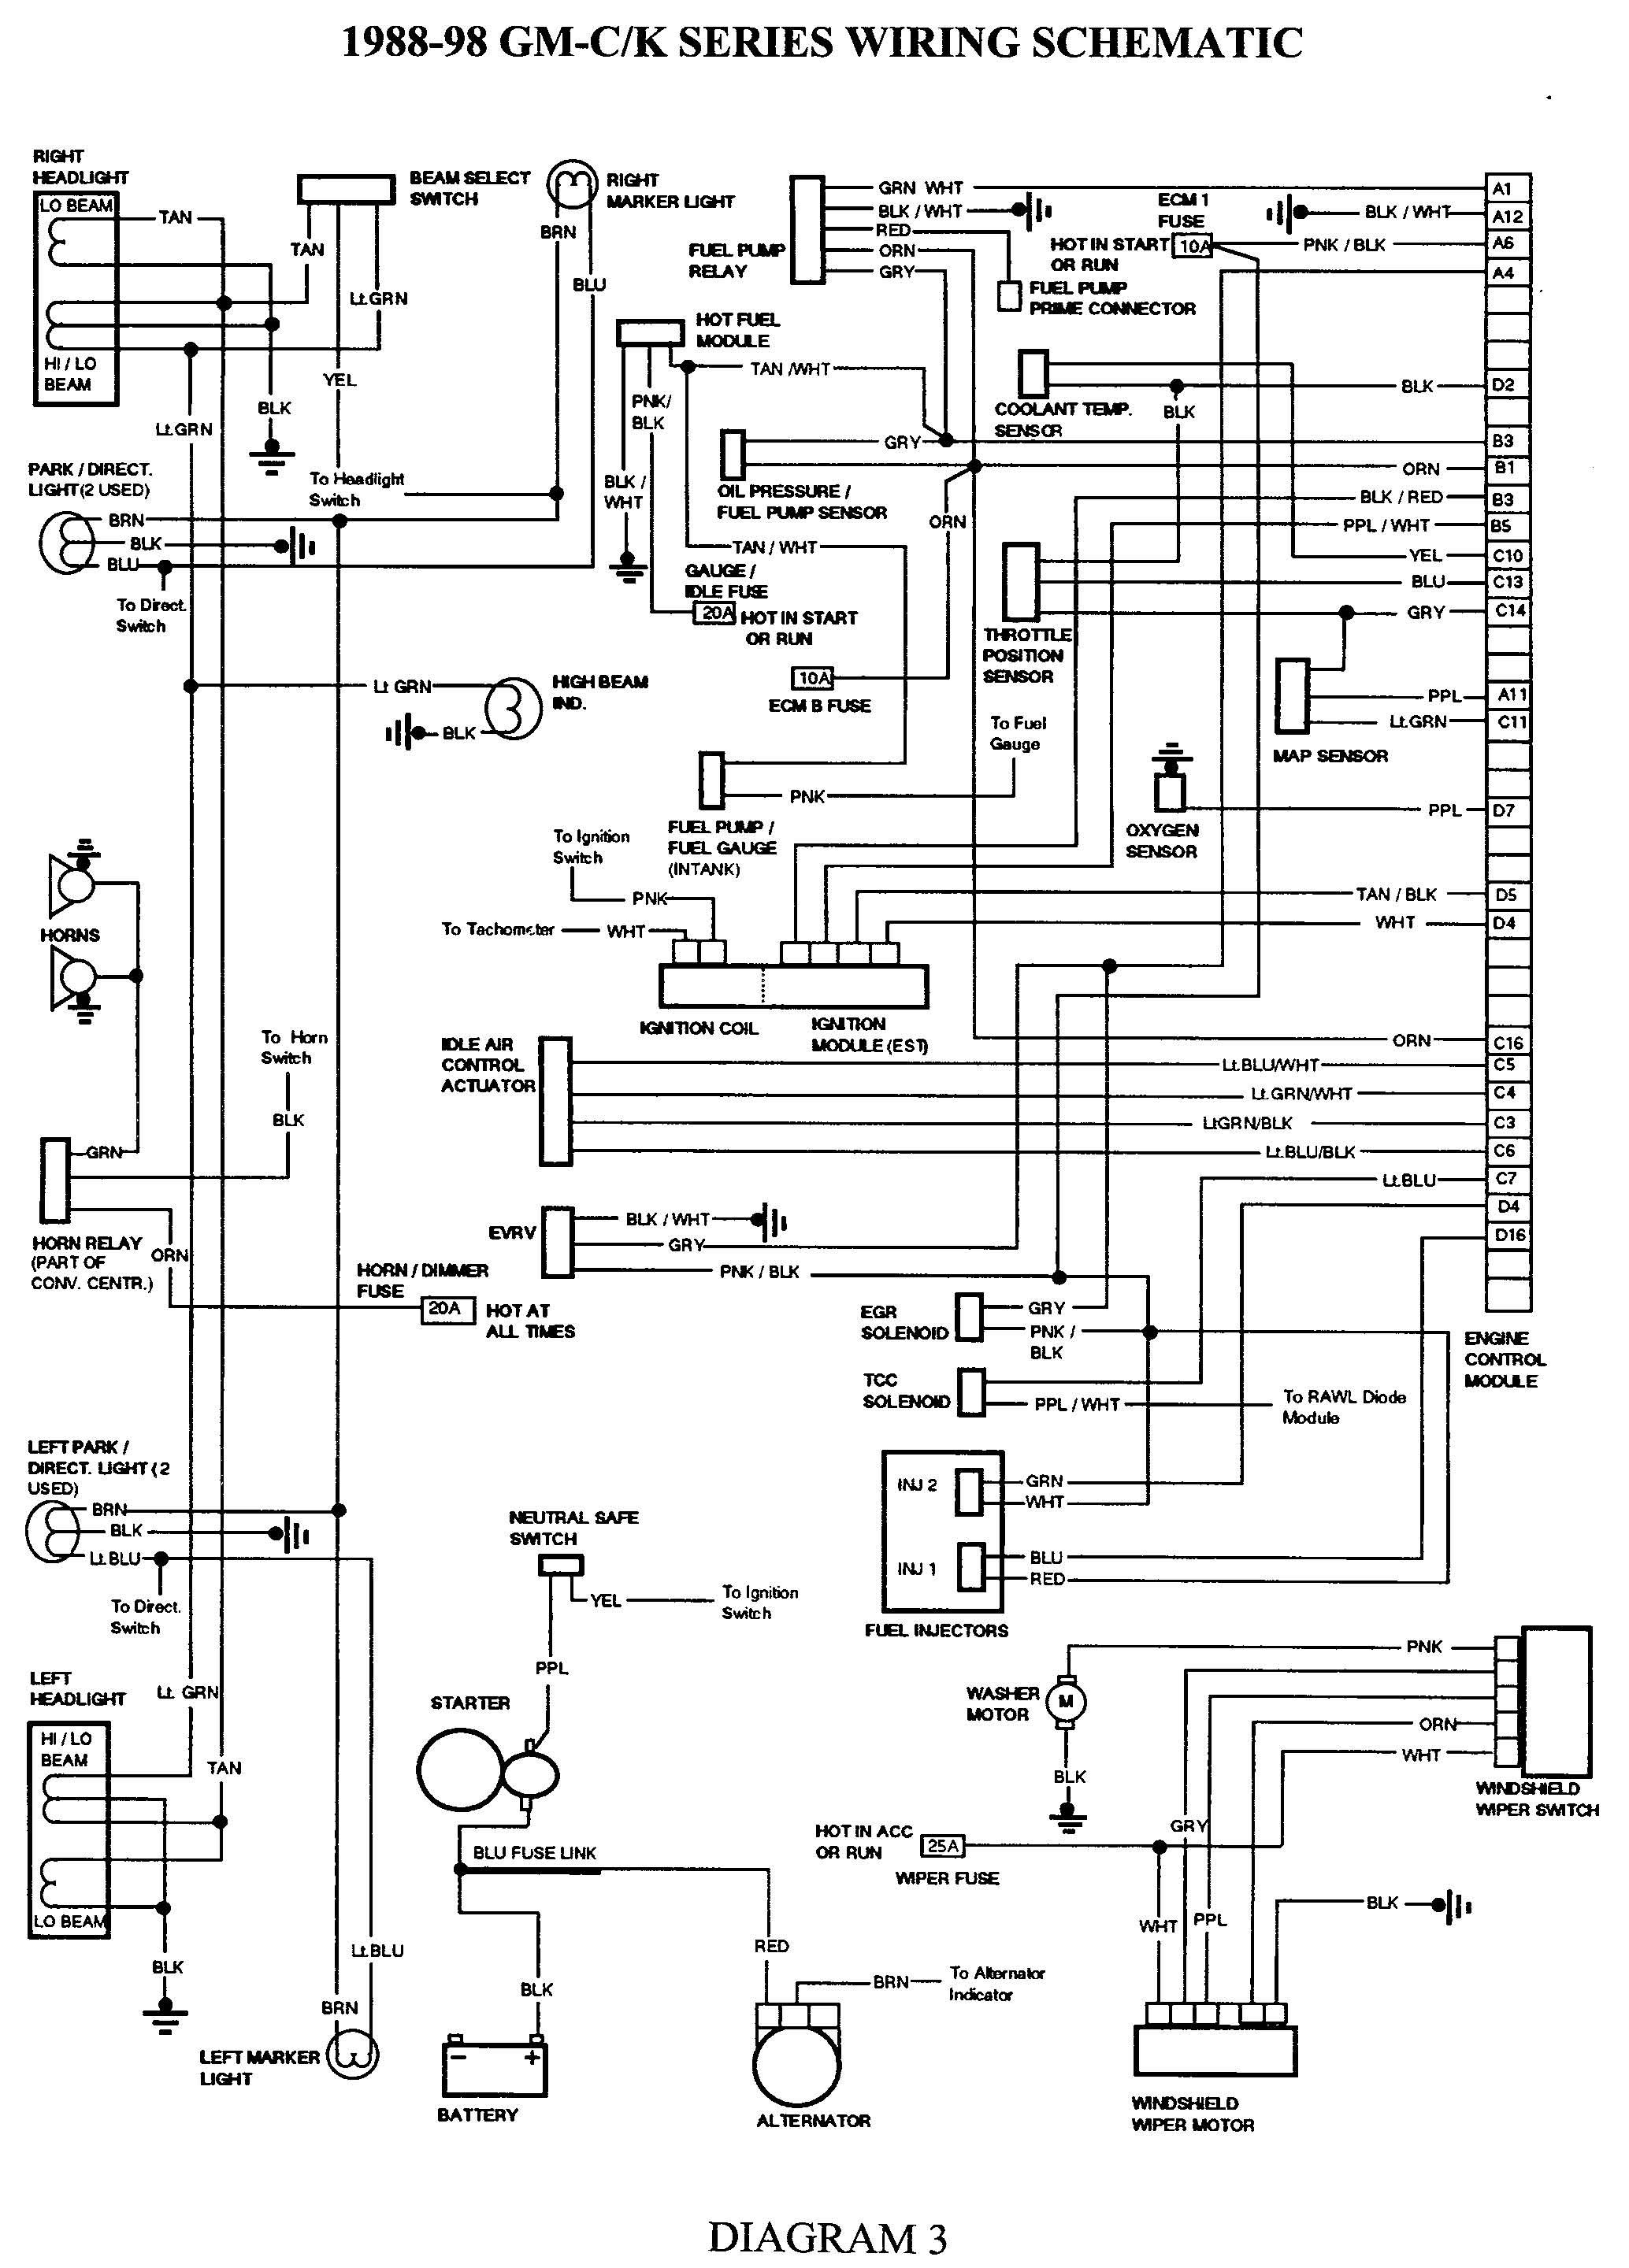 gmc truck wiring diagrams on gm wiring harness diagram 88 98 kc rh pinterest com Chevy Colorado 2005 Electrical Diagram Chevrolet Colorado Wiring-Diagram